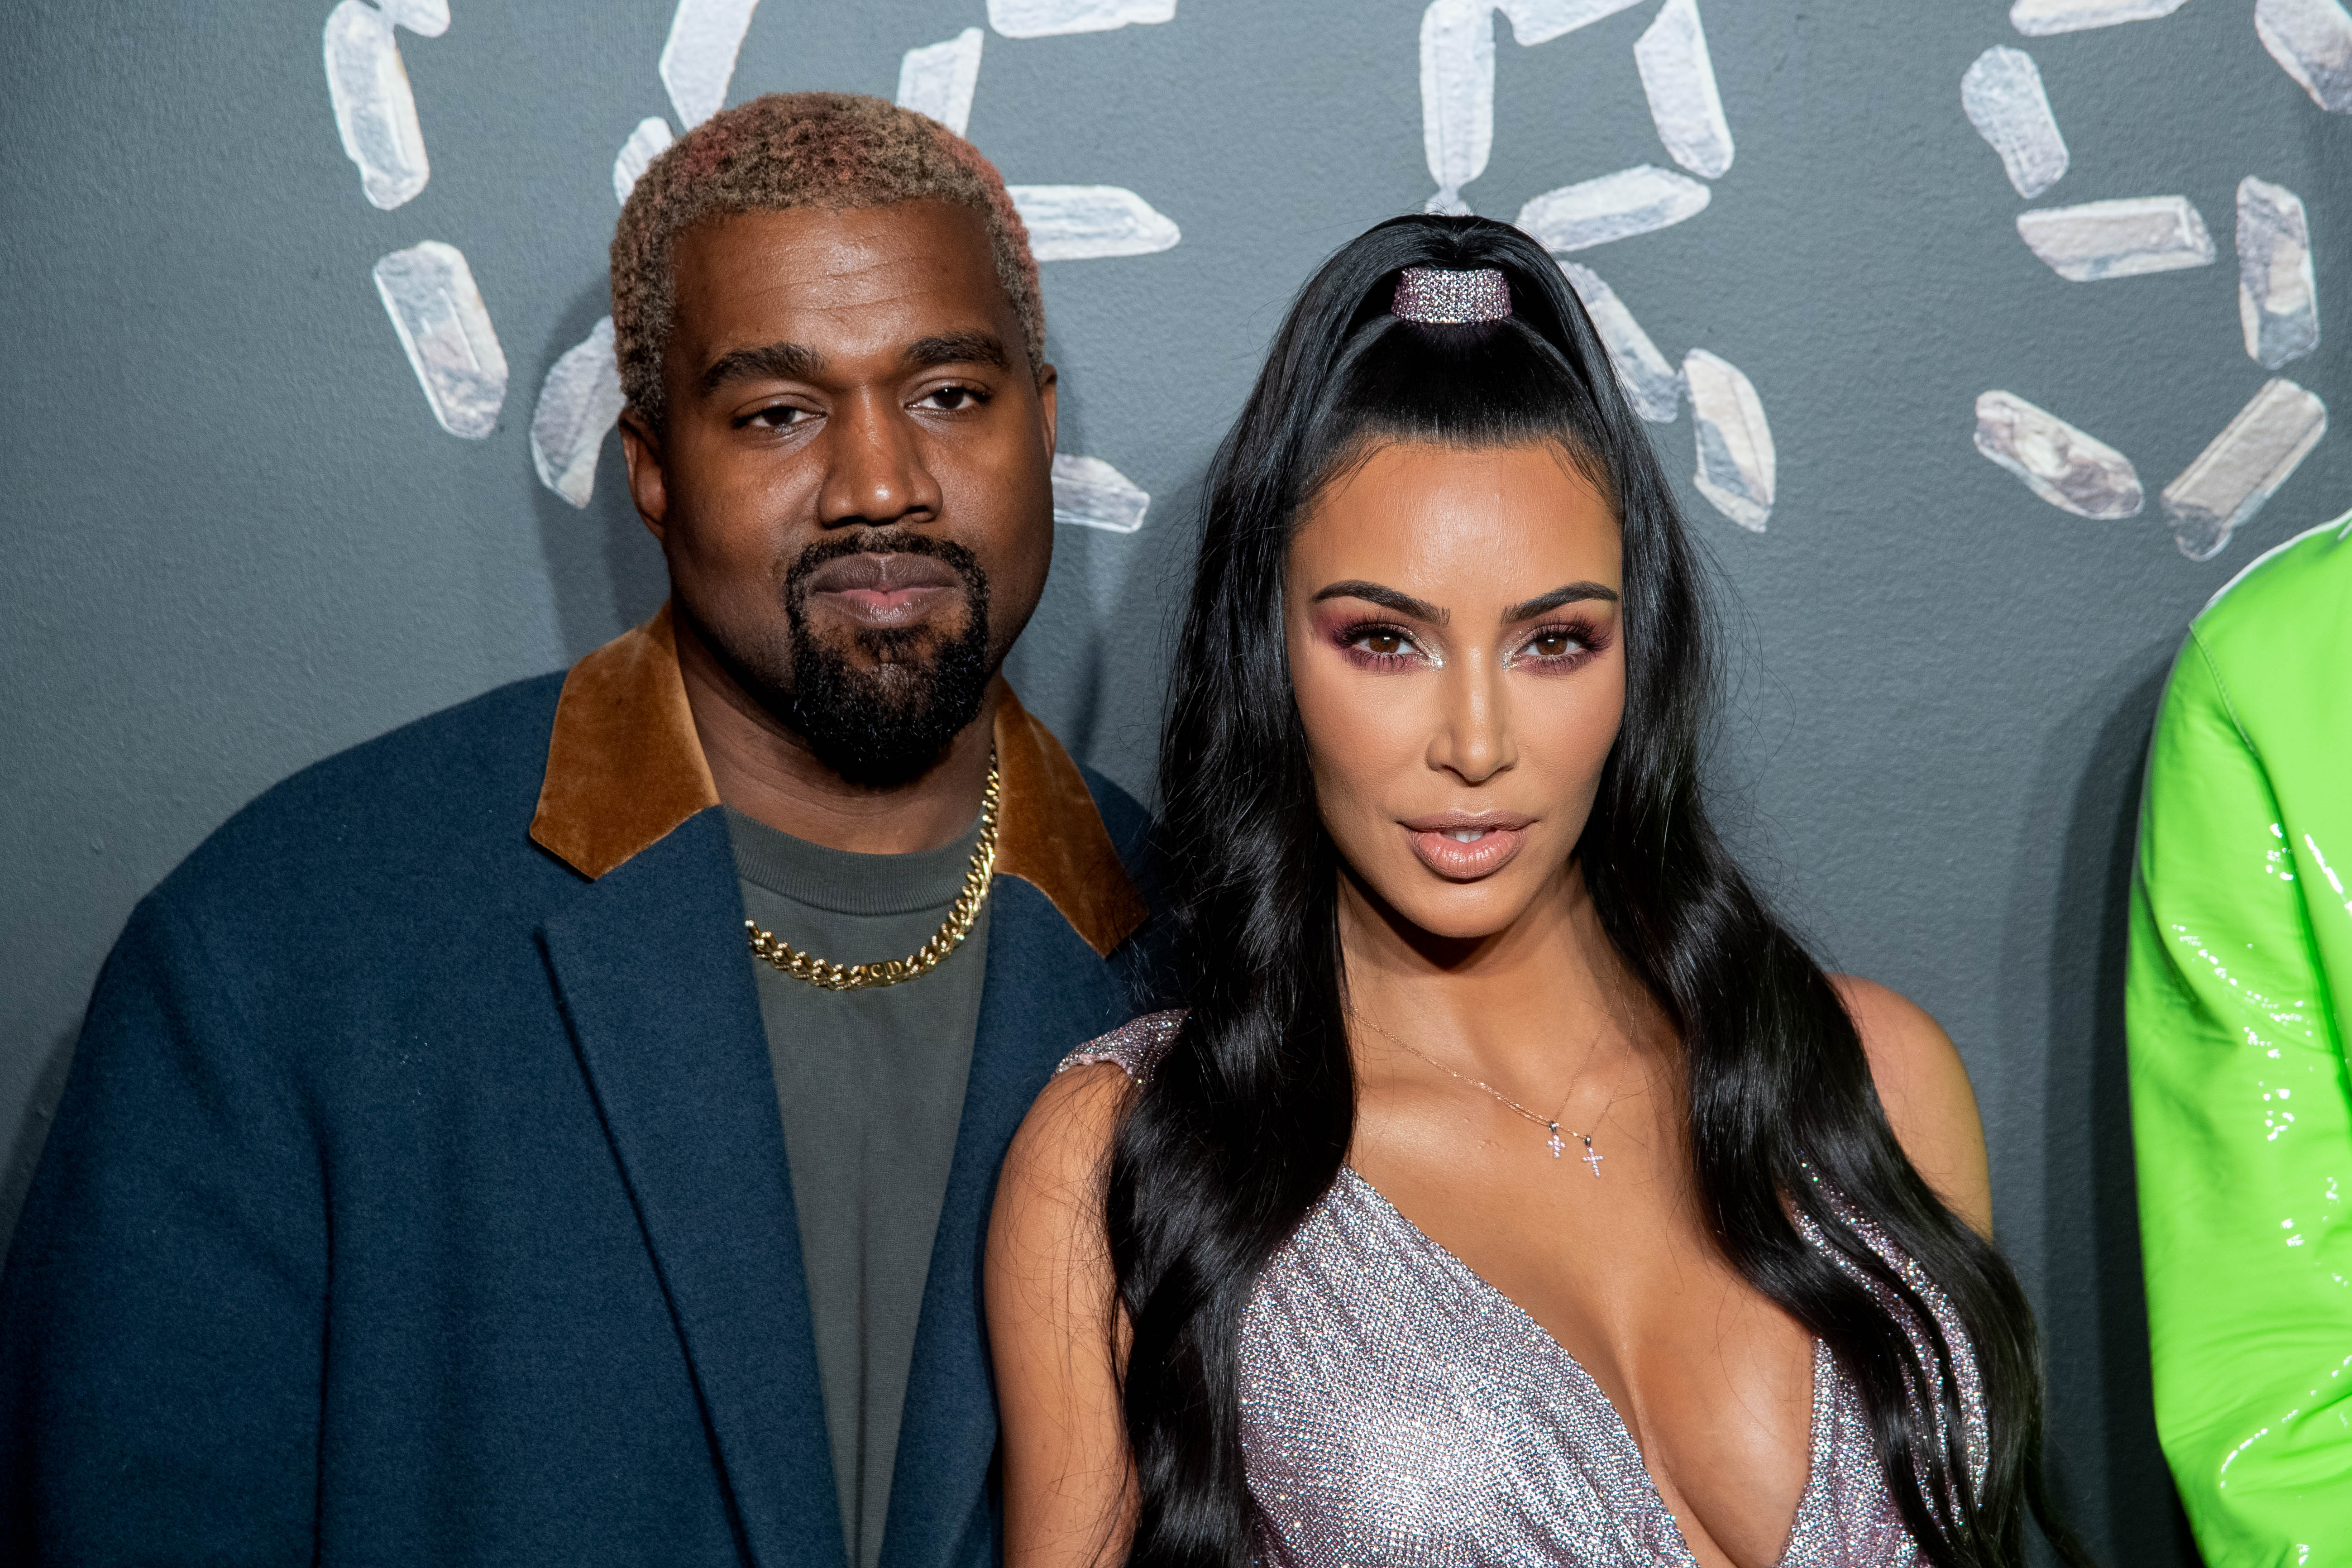 Kanye West and Kim Kardashian West at the the Versace fall 2019 fashion show held at the American Stock Exchange Building in lower Manhattan on December 02, 2018 in New York City | Photo: Getty Images